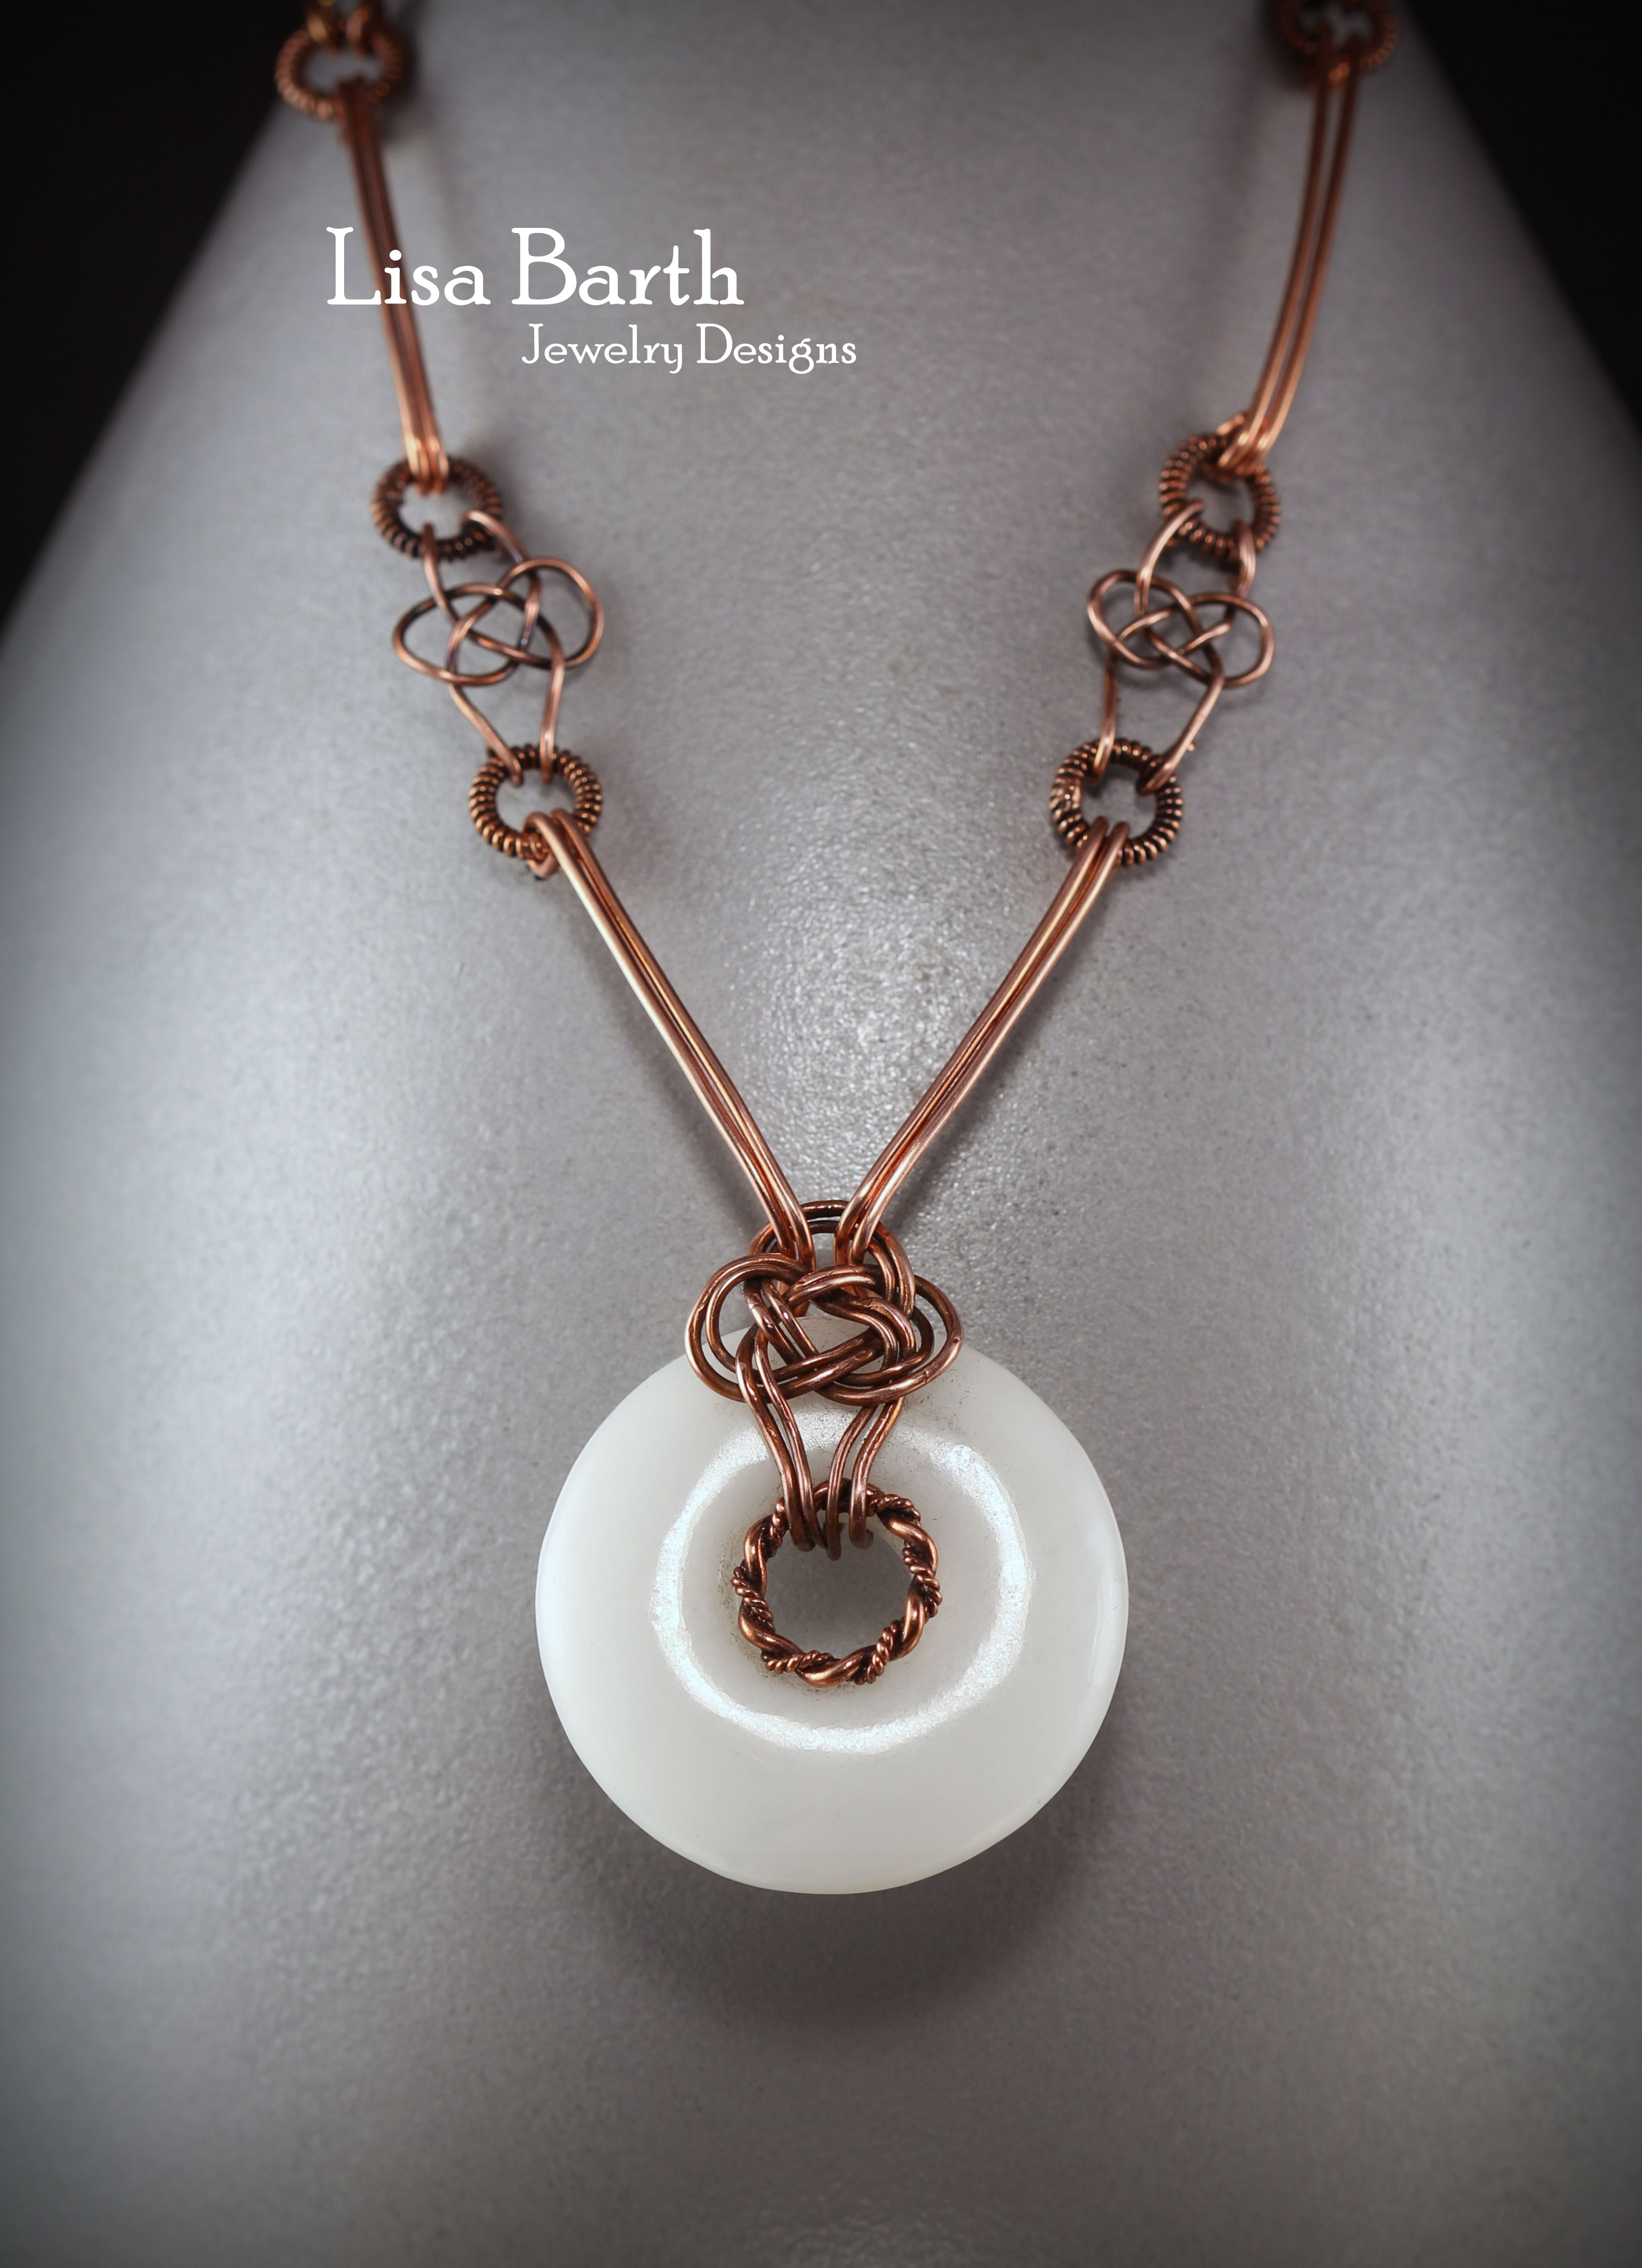 Lisa Barth -Classic Celtic Knot as a bail and link for the necklace ...